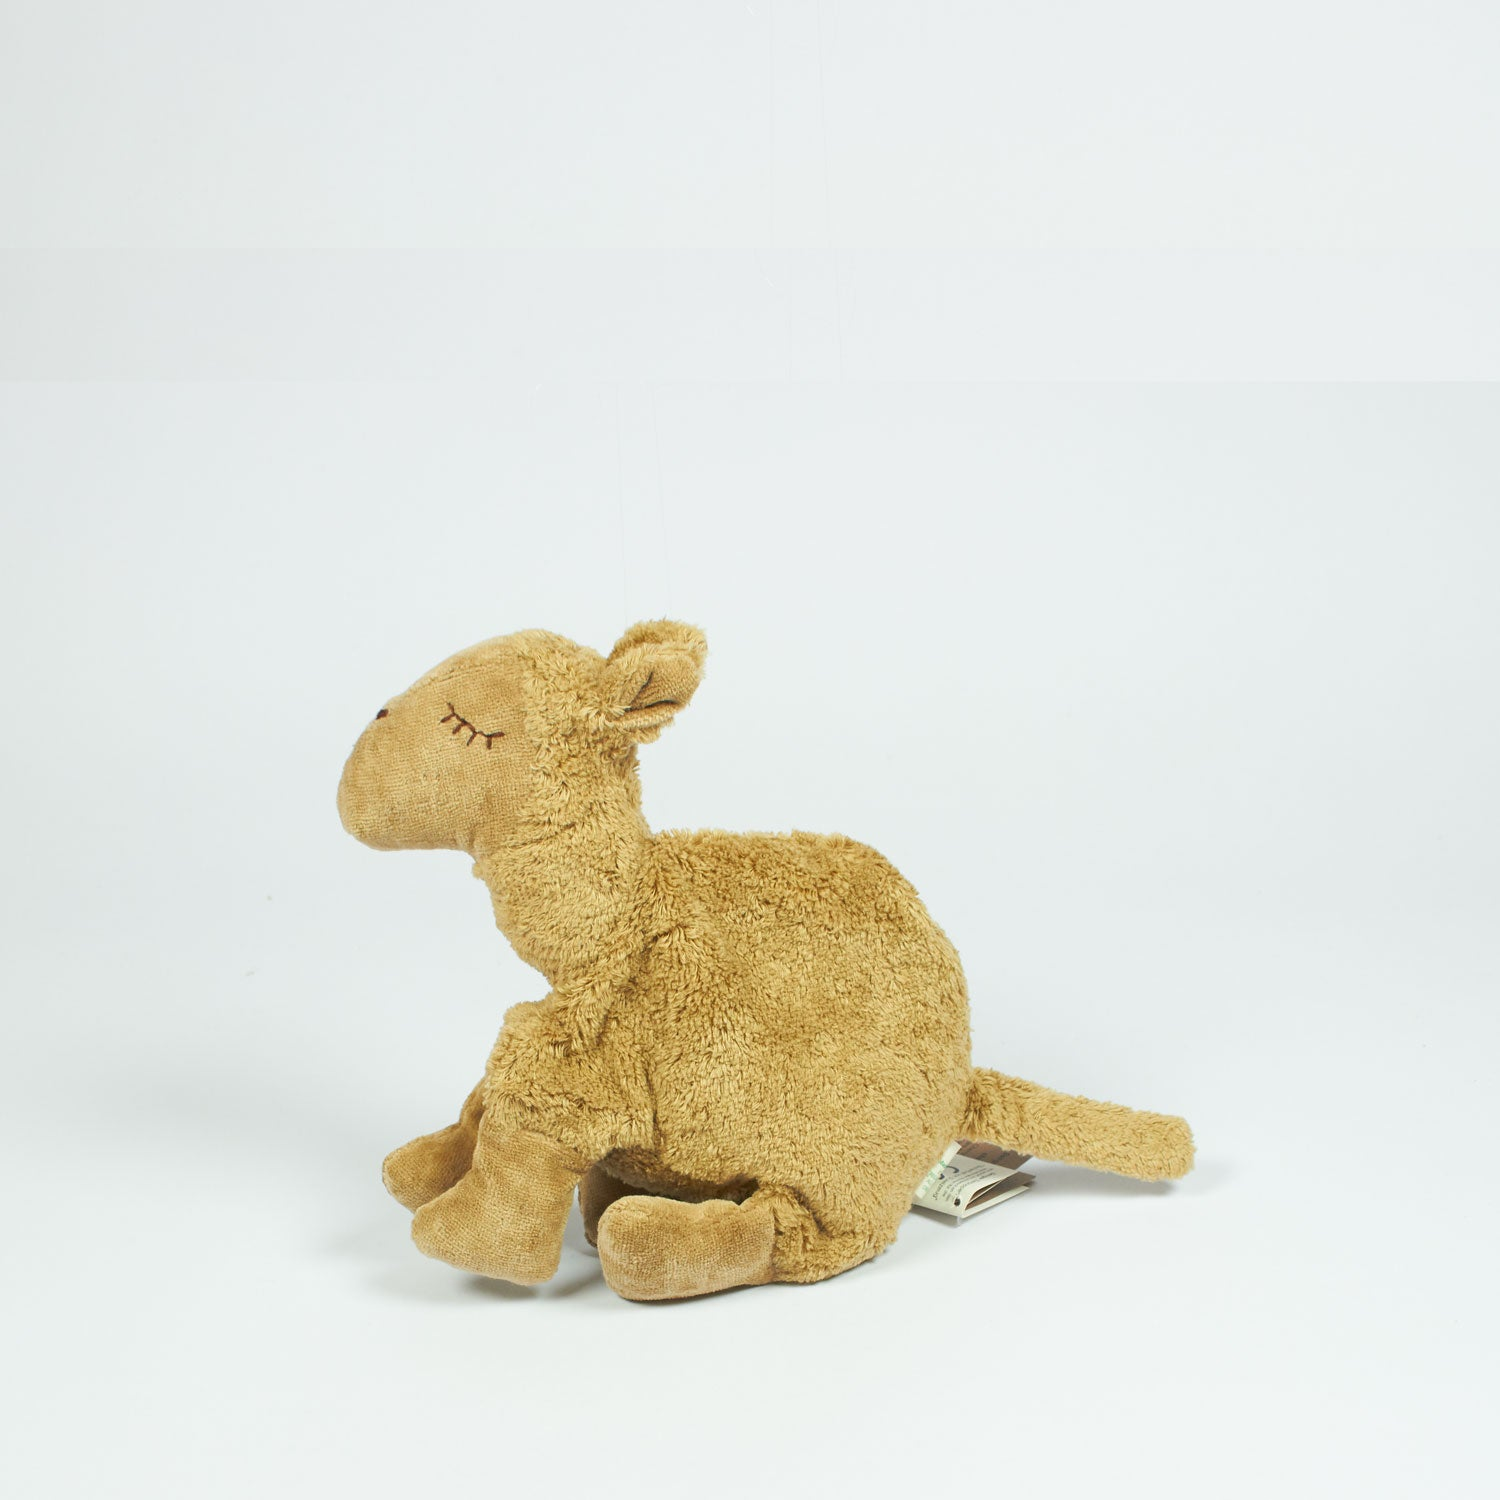 Senger Naturwelt cuddly animal camel small